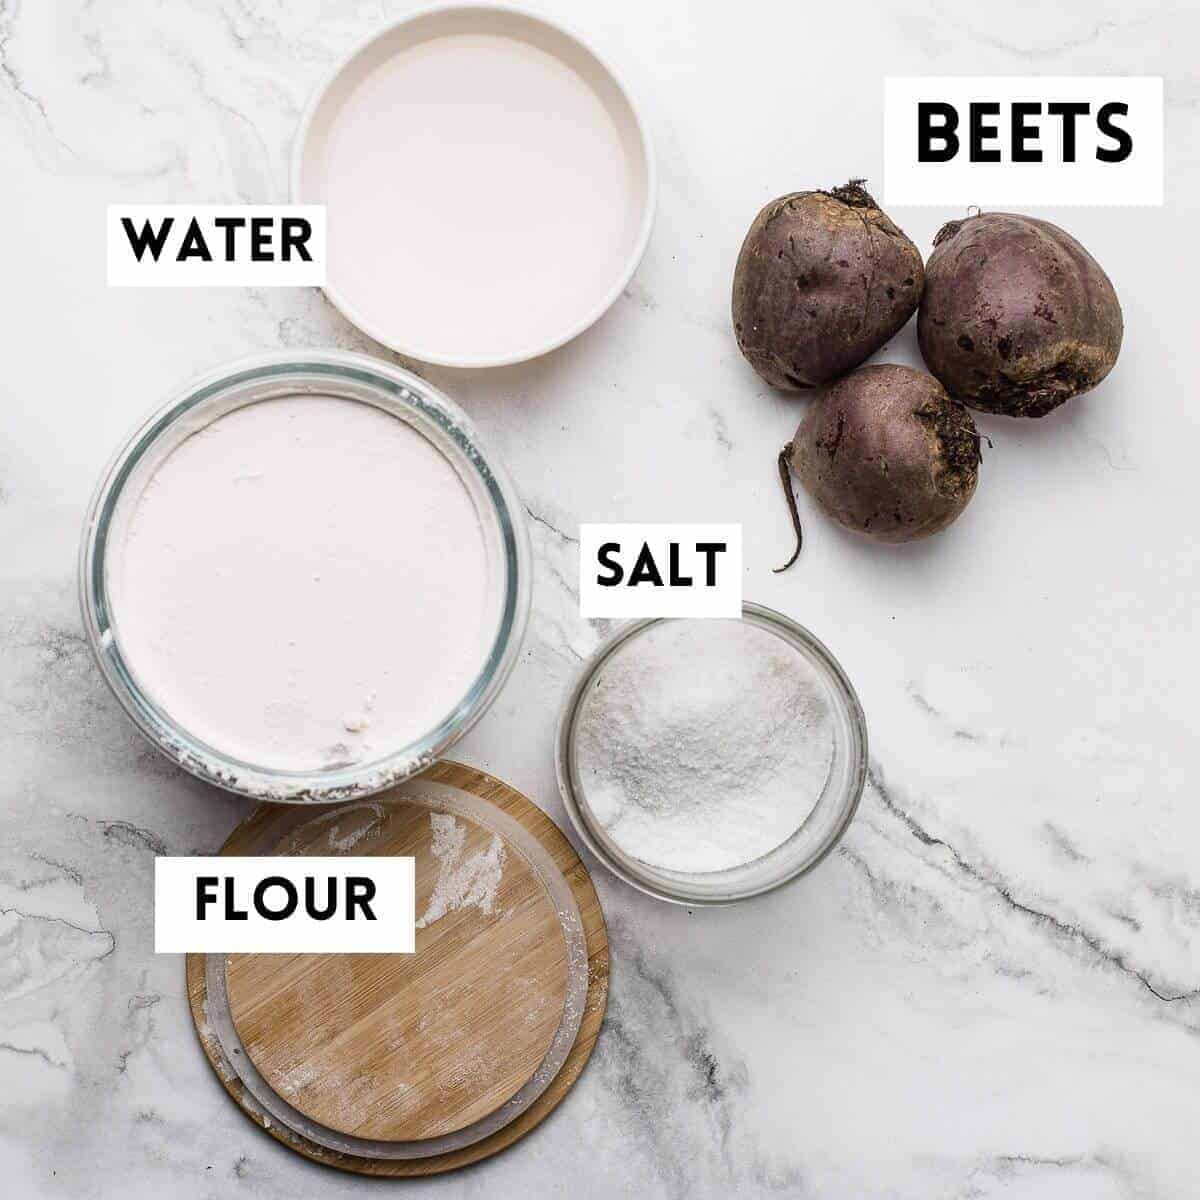 ingredients for making salt roasted beets. water, flour, salt and beets